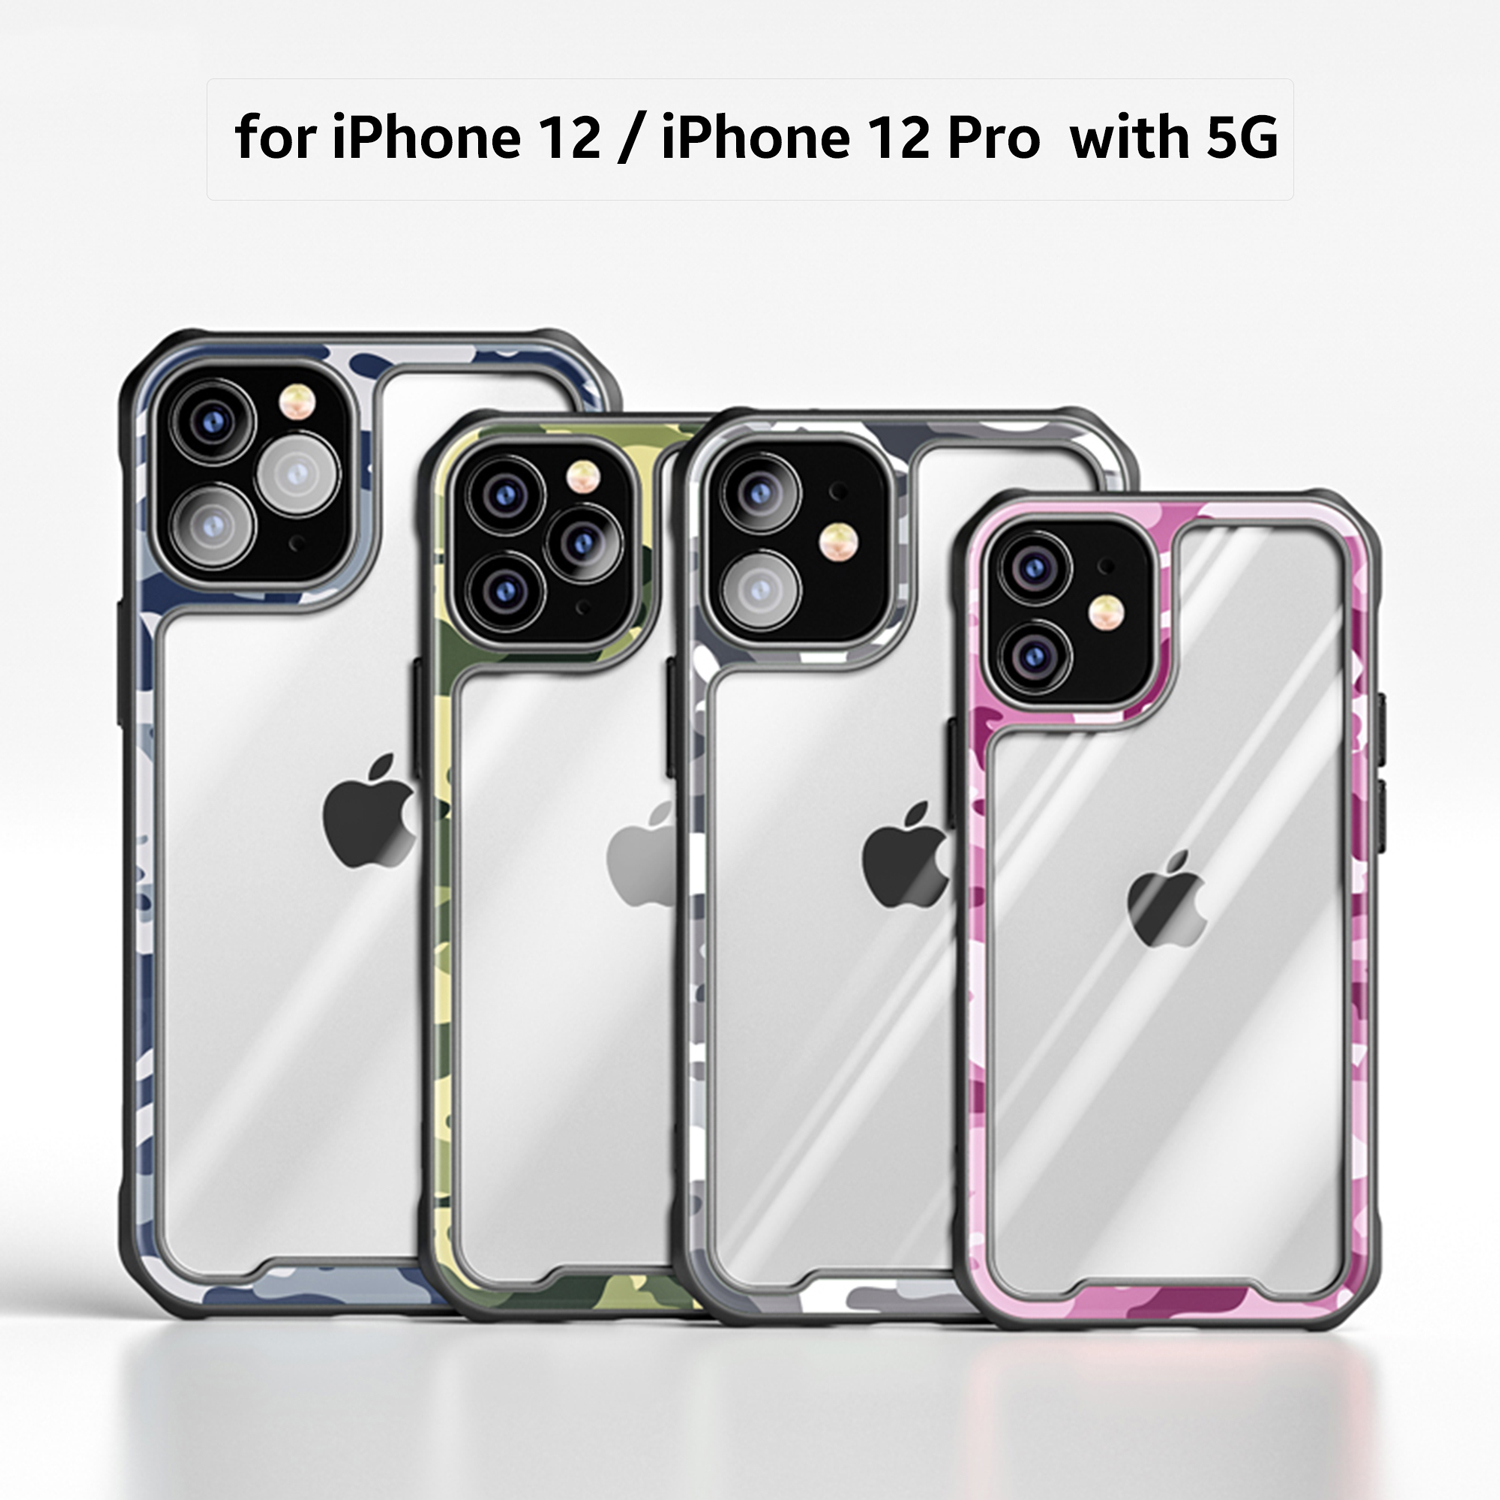 Ultra Hybrid Comfort Grip Protective Camouflage Case Cover for iPhone 12 Pro Max